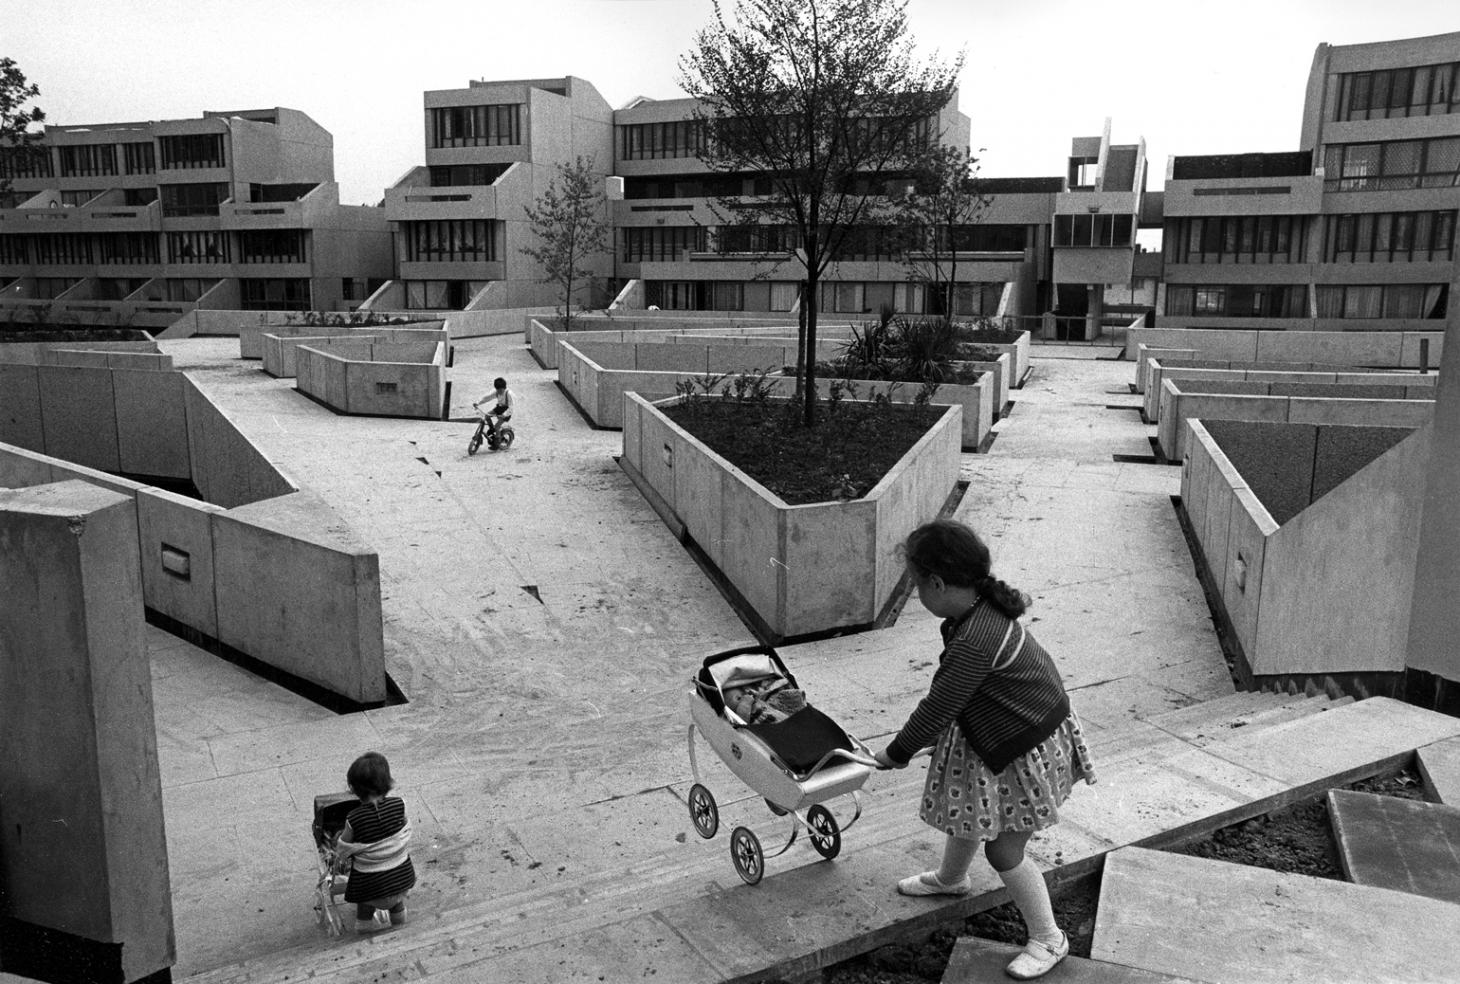 Tony Ray Jones, Photography of brutalist estate Thamesmead in the 1970s